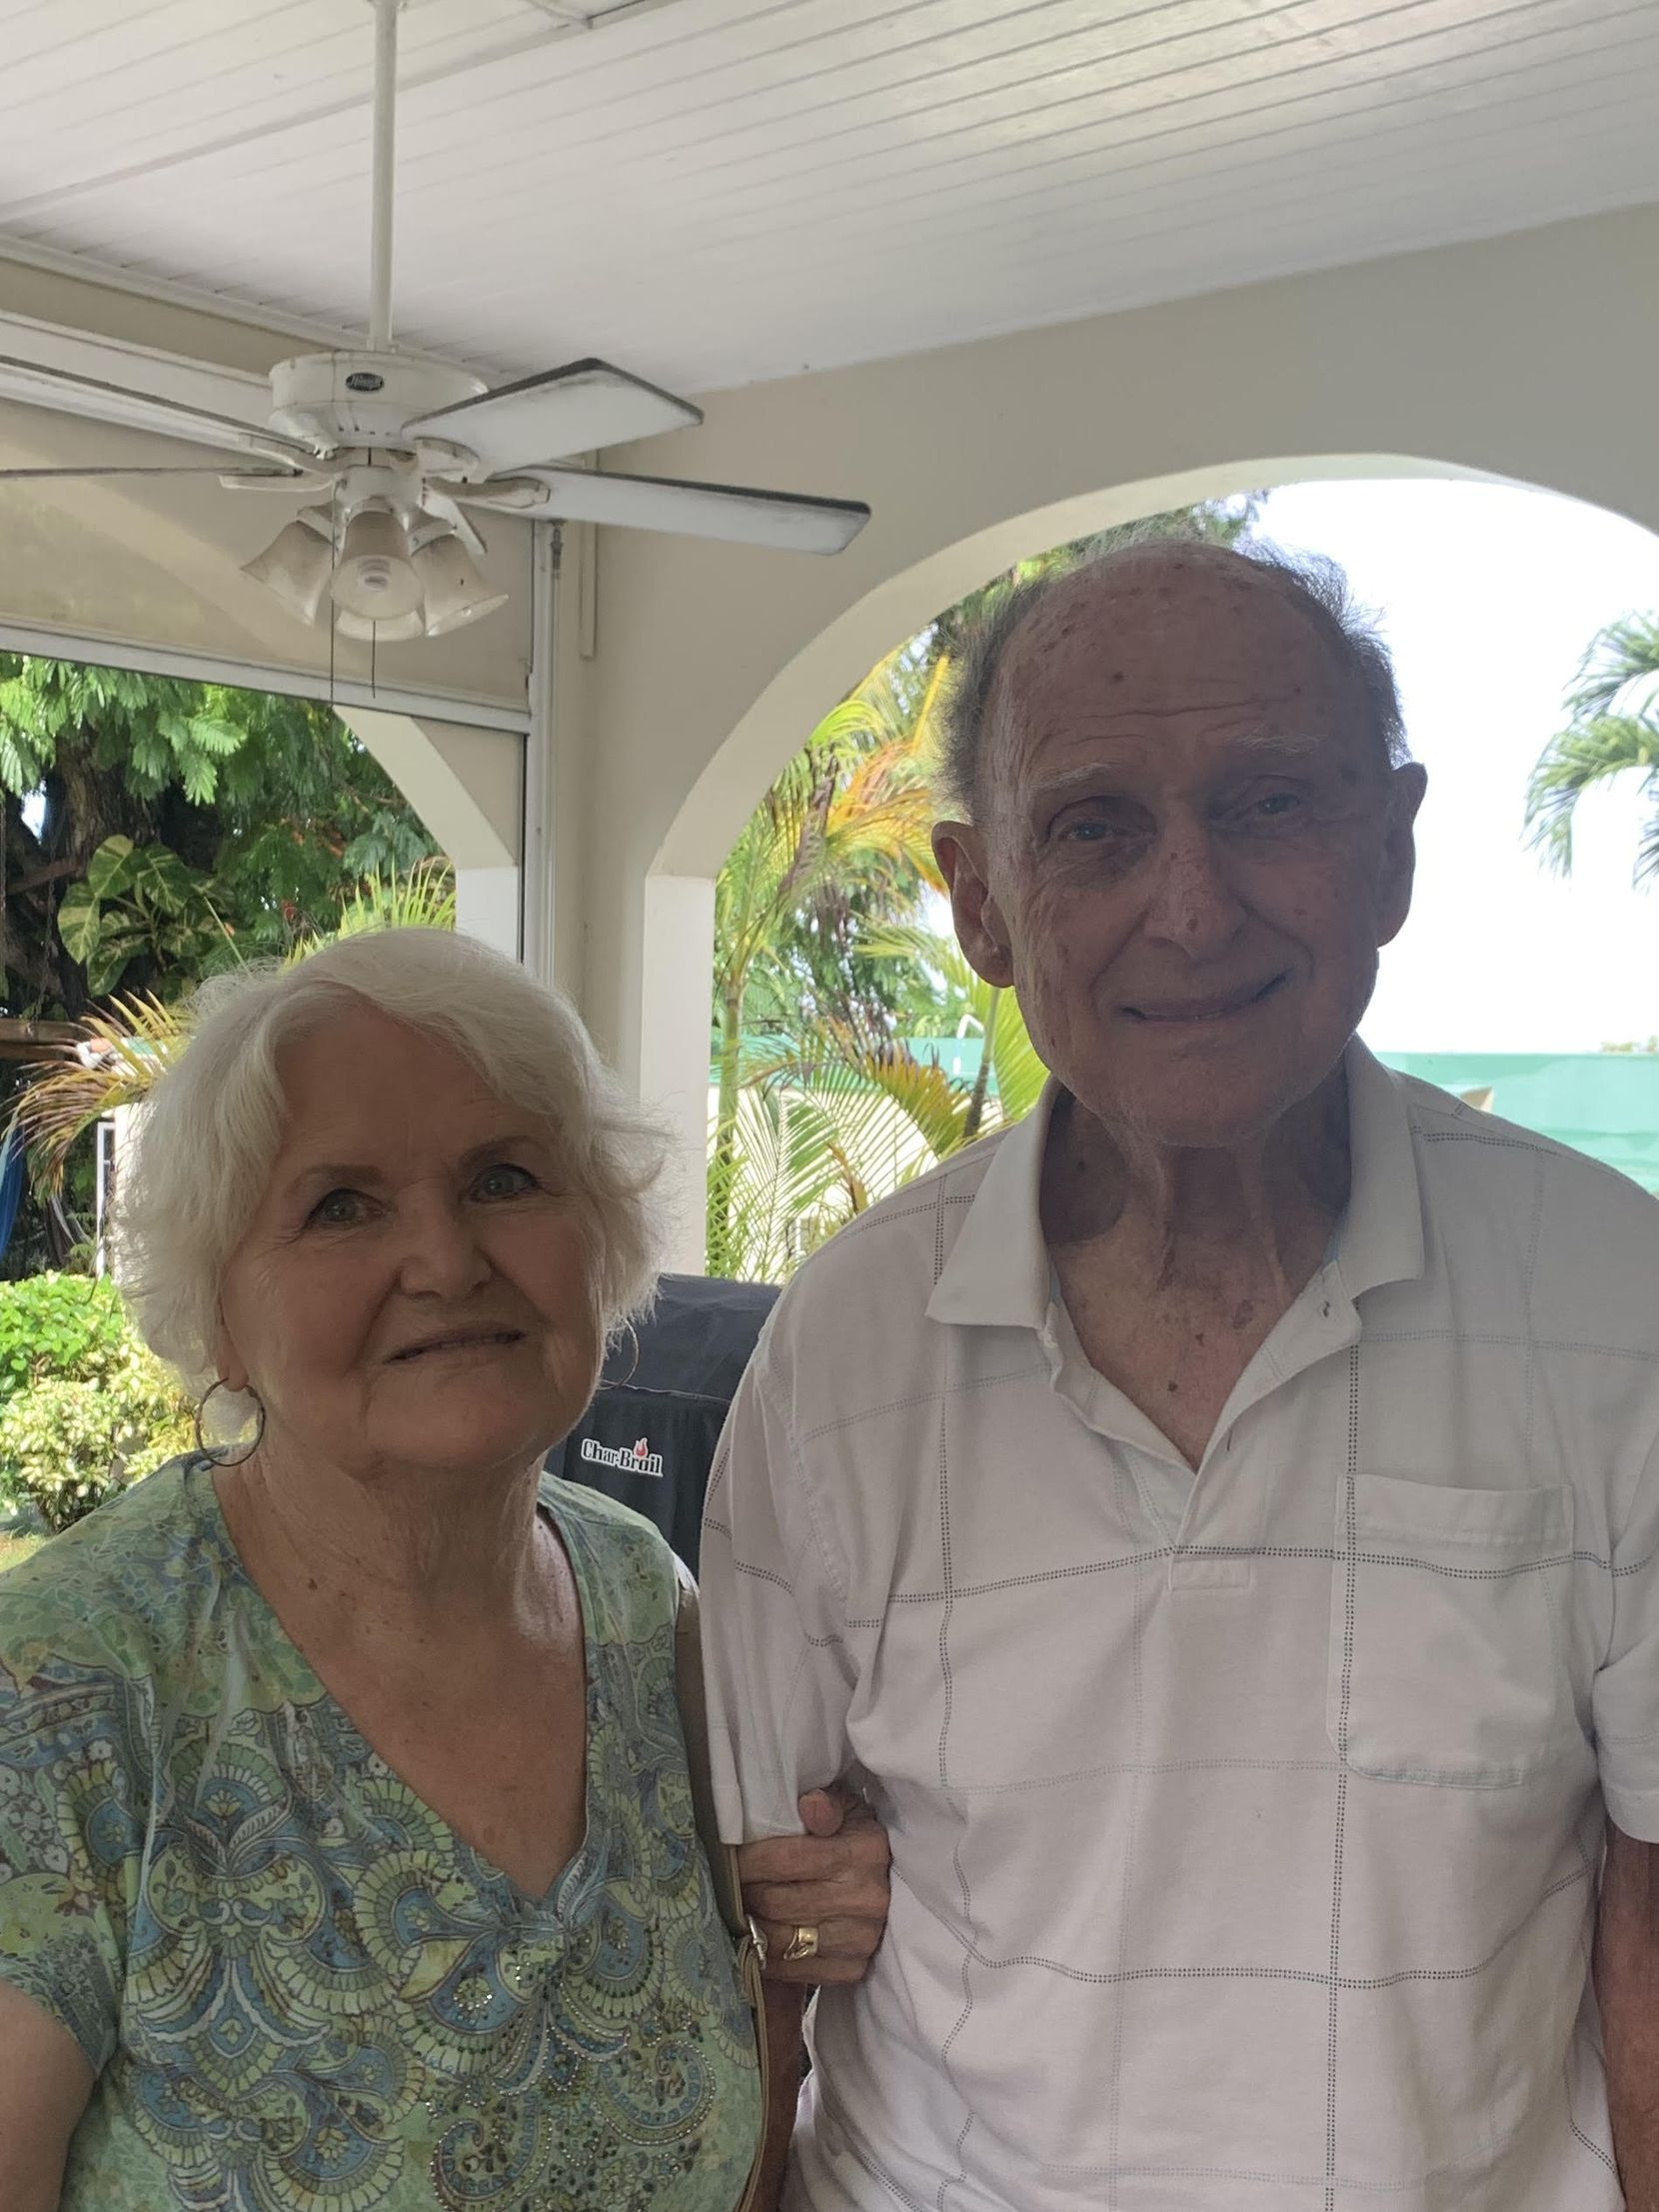 Bonnie and Bill Jennings, of Arlington traveled to Barbados on American Airlines in early March to visit their daughter and son-in-law, who live there year round. The elderly couple became stranded when the coronavirus pandemic led Barbados to shut down its borders. They expect to finally get to return to North Texas next week.